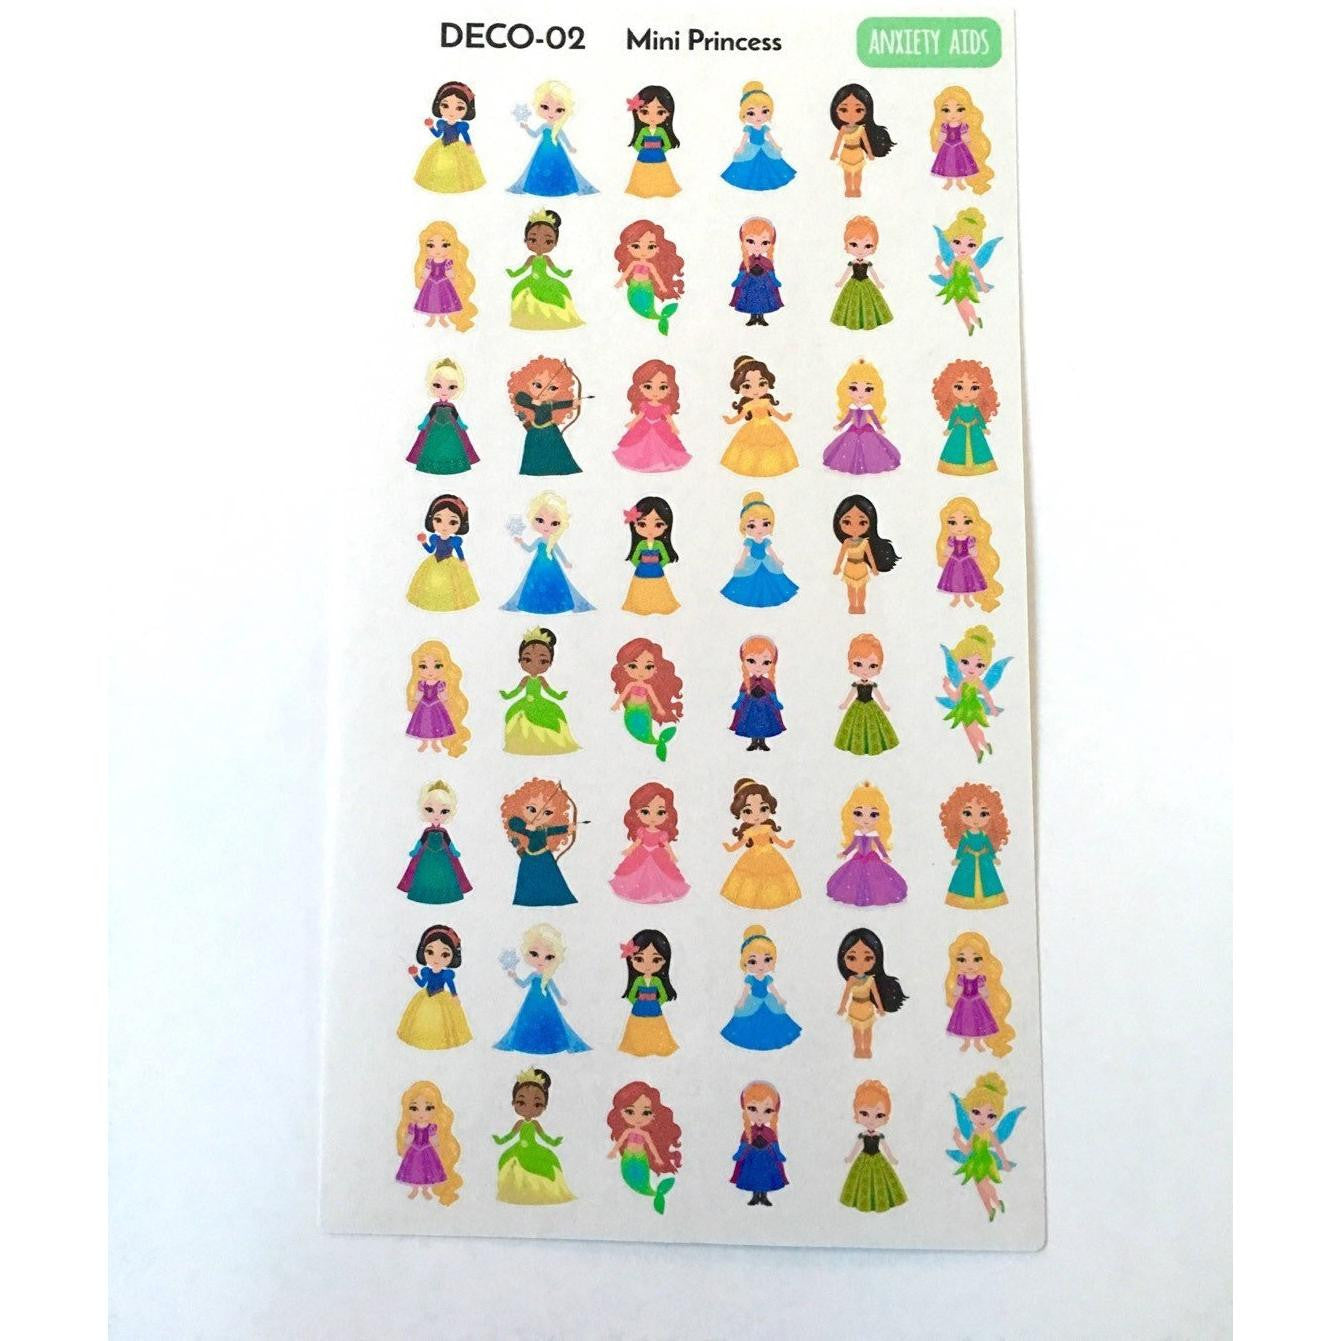 DECO-02 Mini Princess Planner Stickers  Anxiety Aids Anxiety Aids